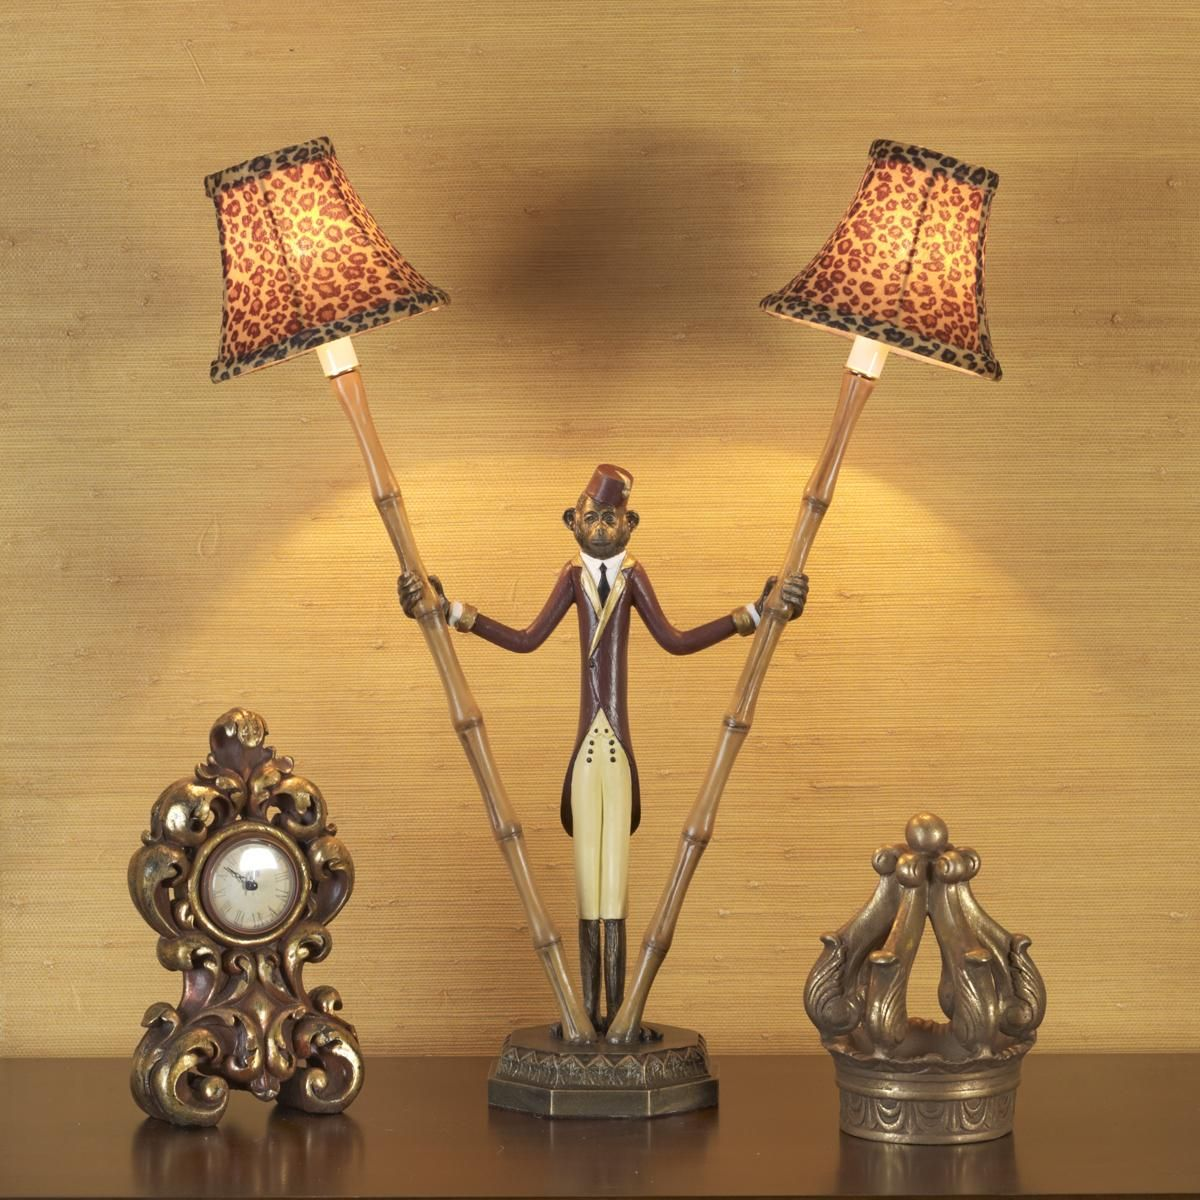 French monkey lamp - I Love This Lamp Handpainted Monkey Bellhop Lamp Holds 2 Bamboo Poles With Your